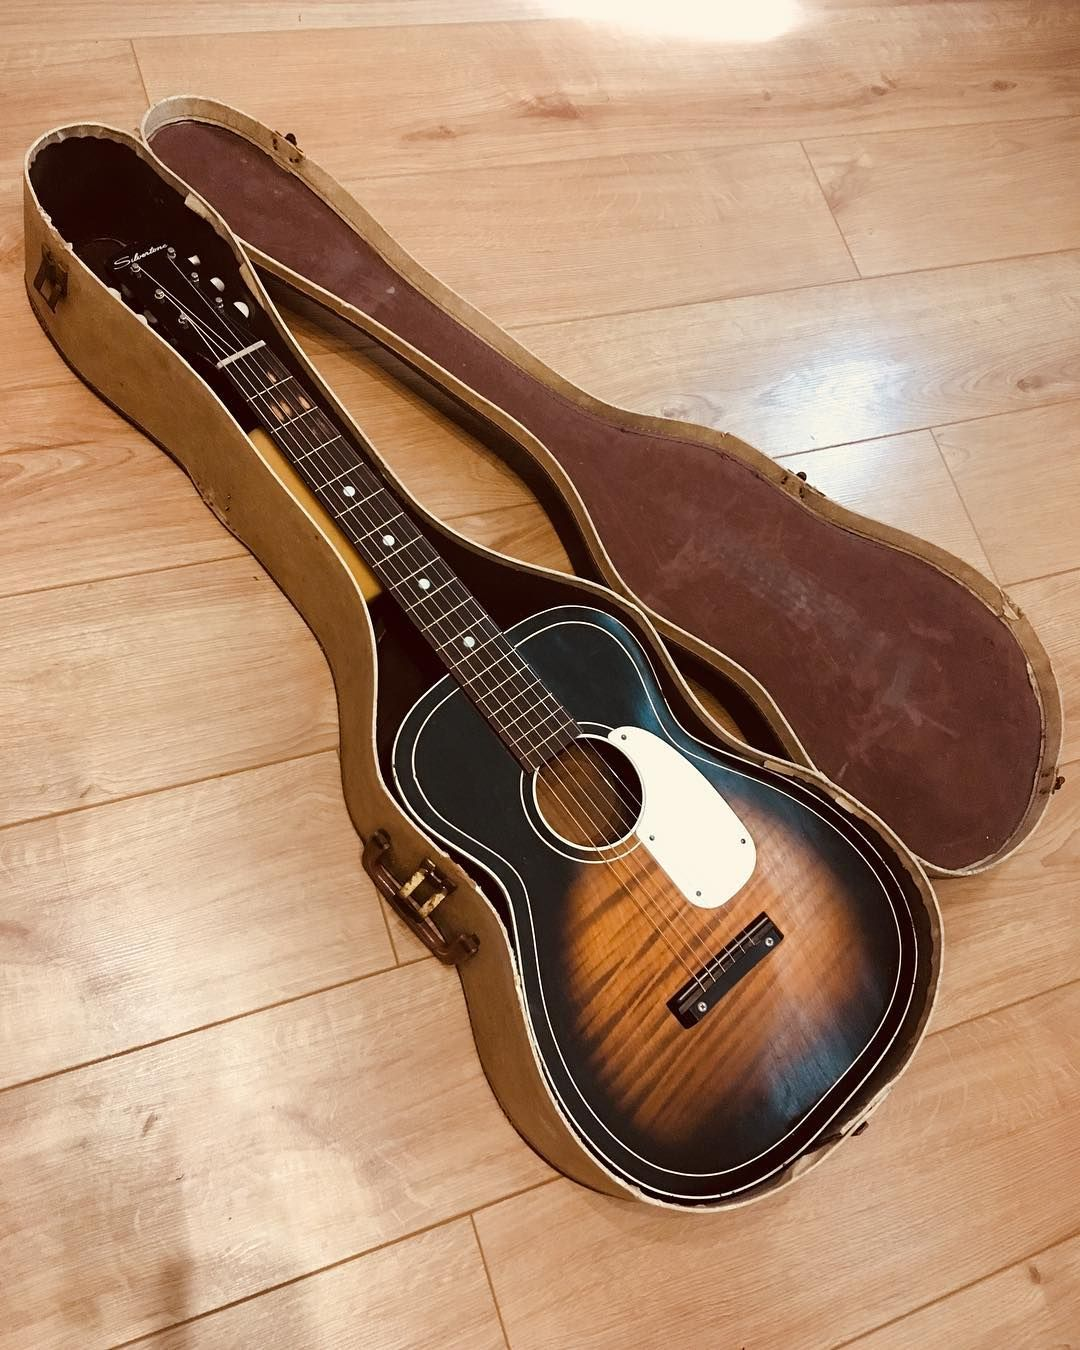 Beautiful Old Silver Tone Acoustic In For A Repair Love These Quirky Little Guitars So Much Character Silvertone Luthier Guita Guitar Acoustic Guitar Tech